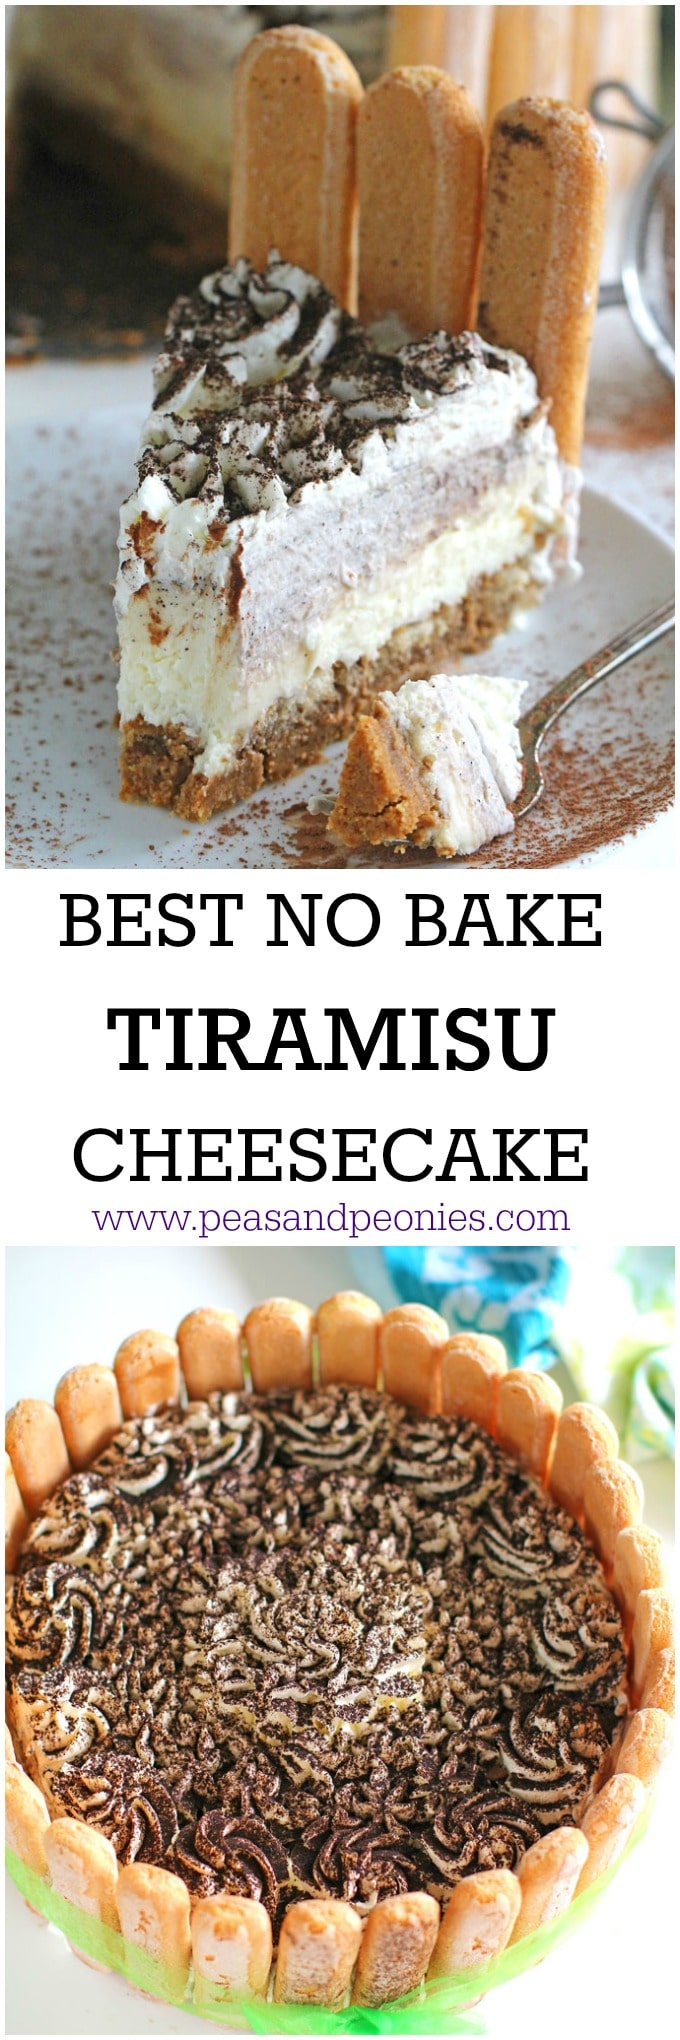 No Bake Tiramisu Cheesecake is a full proof recipe of your favorite Italian dessert. Incredibly creamy, rich and delicious, this will become a favorite.